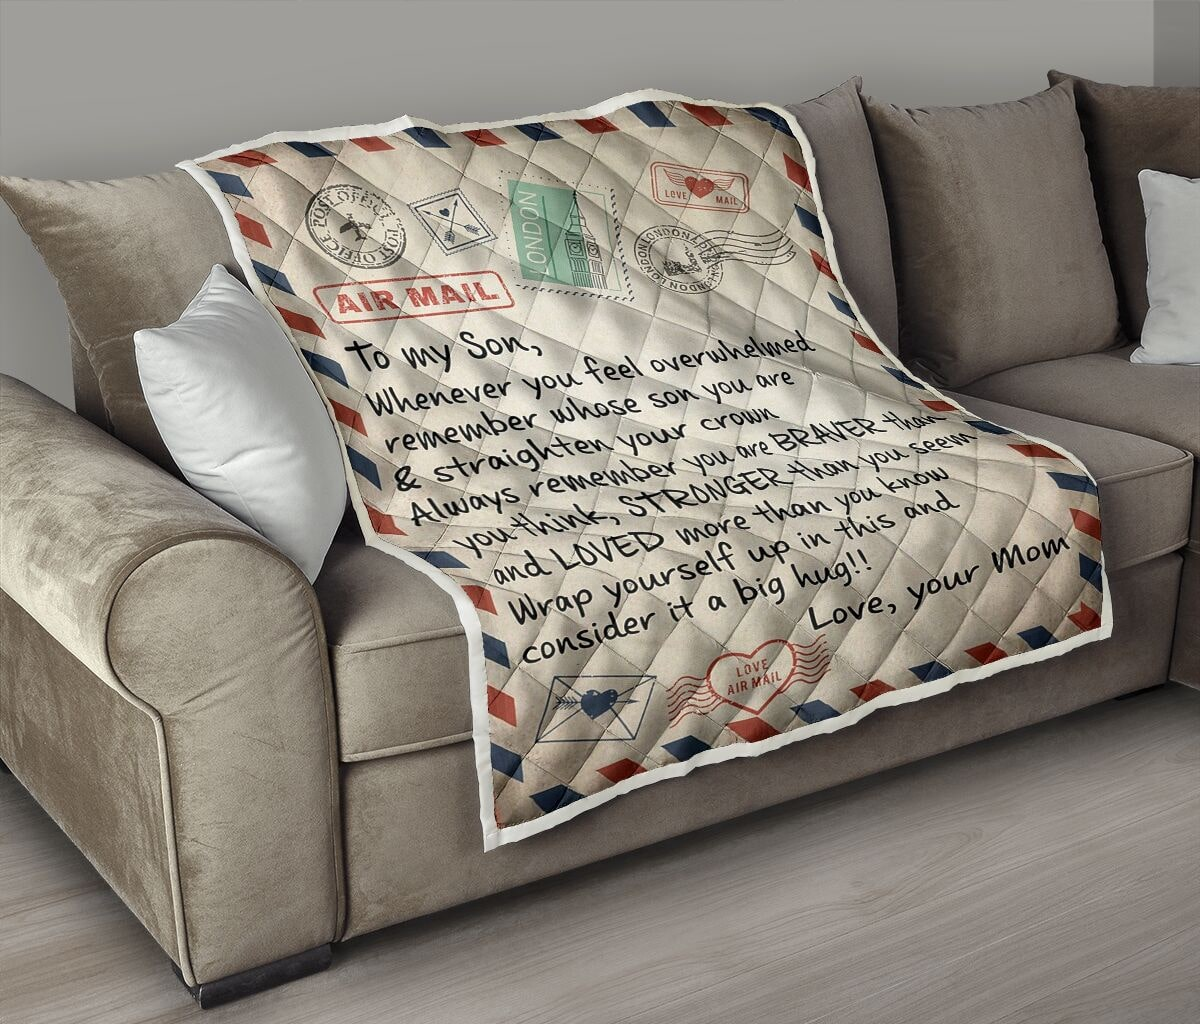 air mail letter to my son always remember you are braver than you think your mom quilt 3